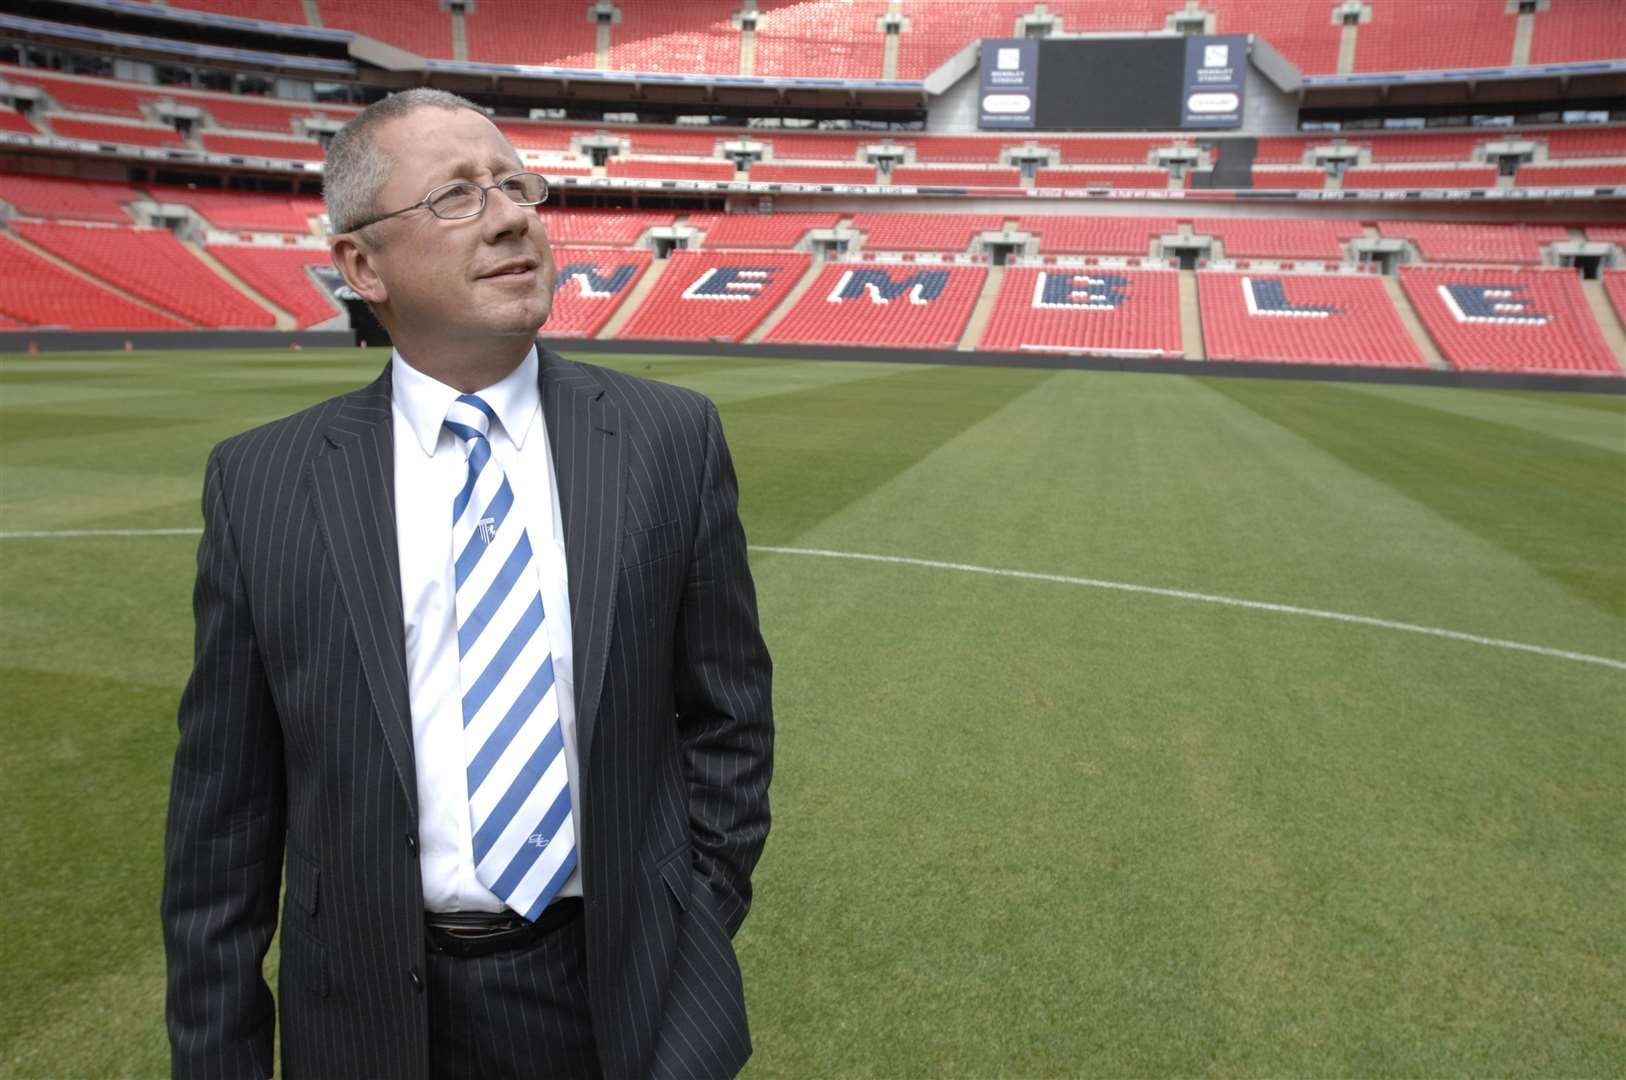 Gillingham have visited Wembley old and new under Paul Scally Picture: Grant Falvey